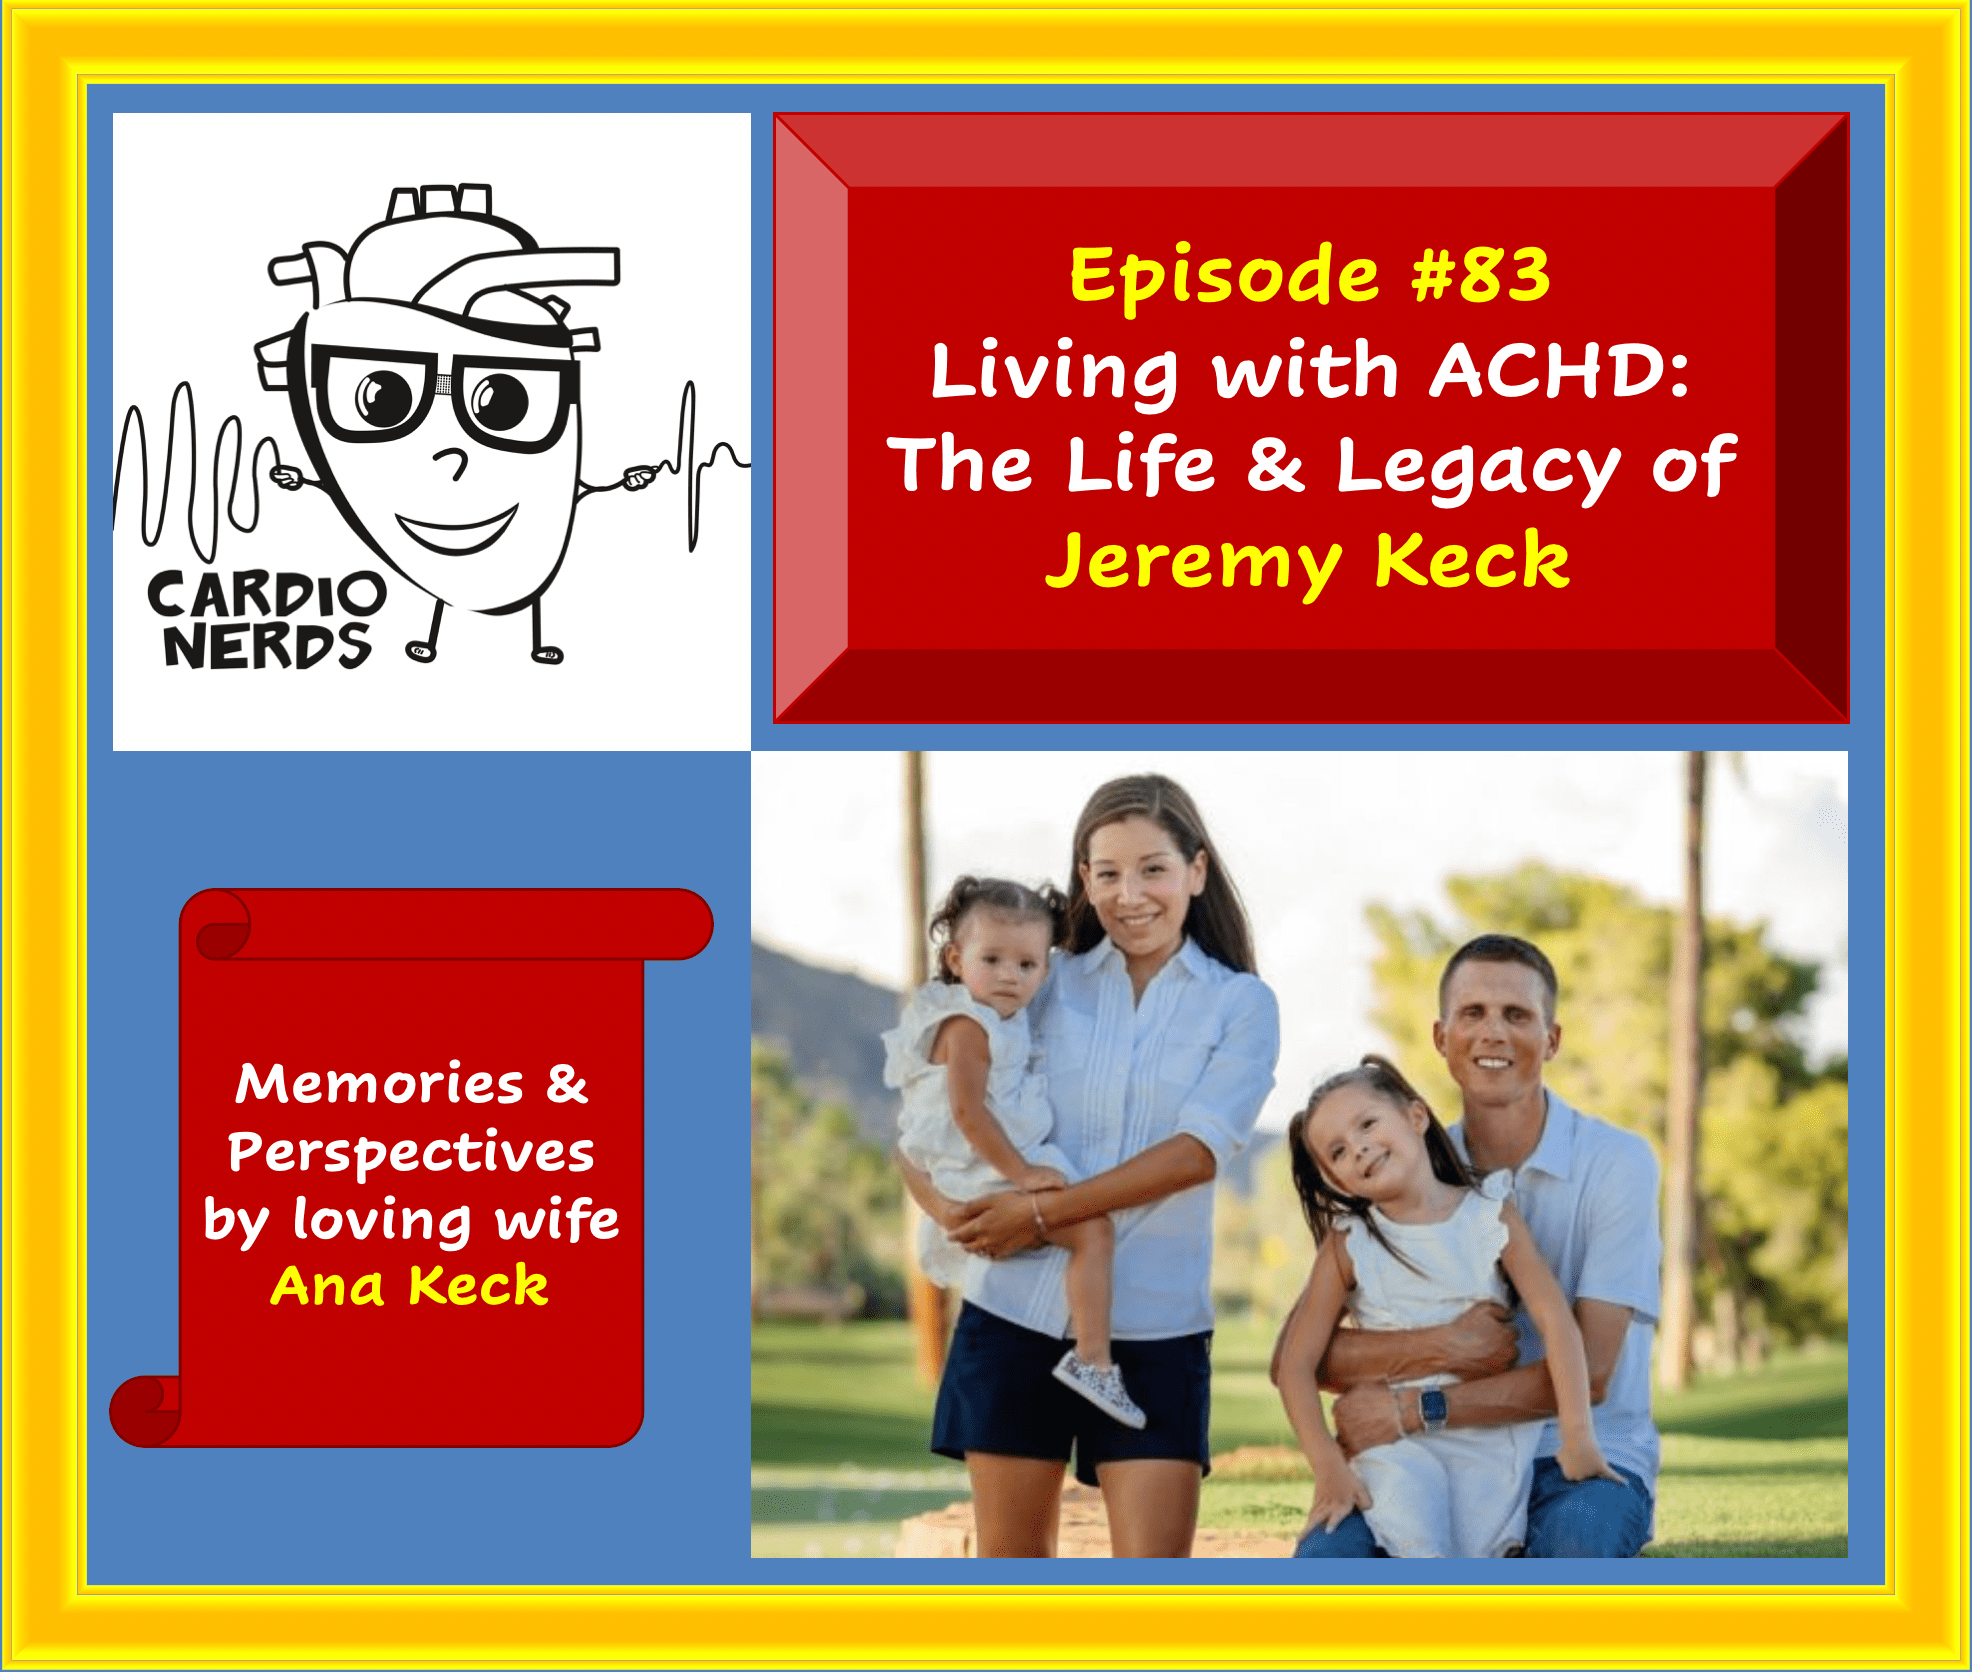 83. Living with Adult Congenital Heart Disease: The Life & Legacy of Jeremy Keck